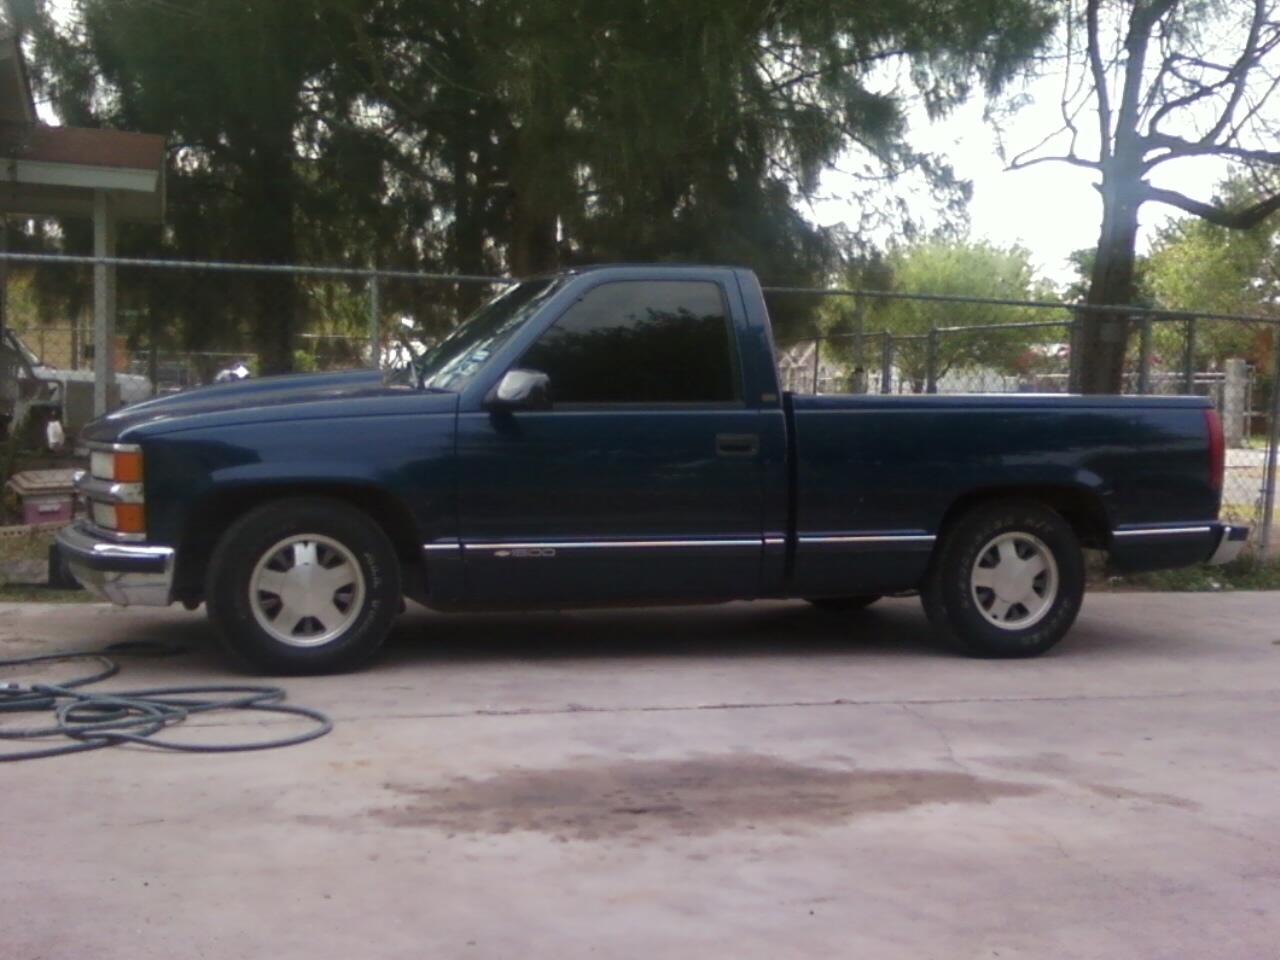 La_SwishaSweet 1998 Chevrolet C/K Pick-Up 14023746